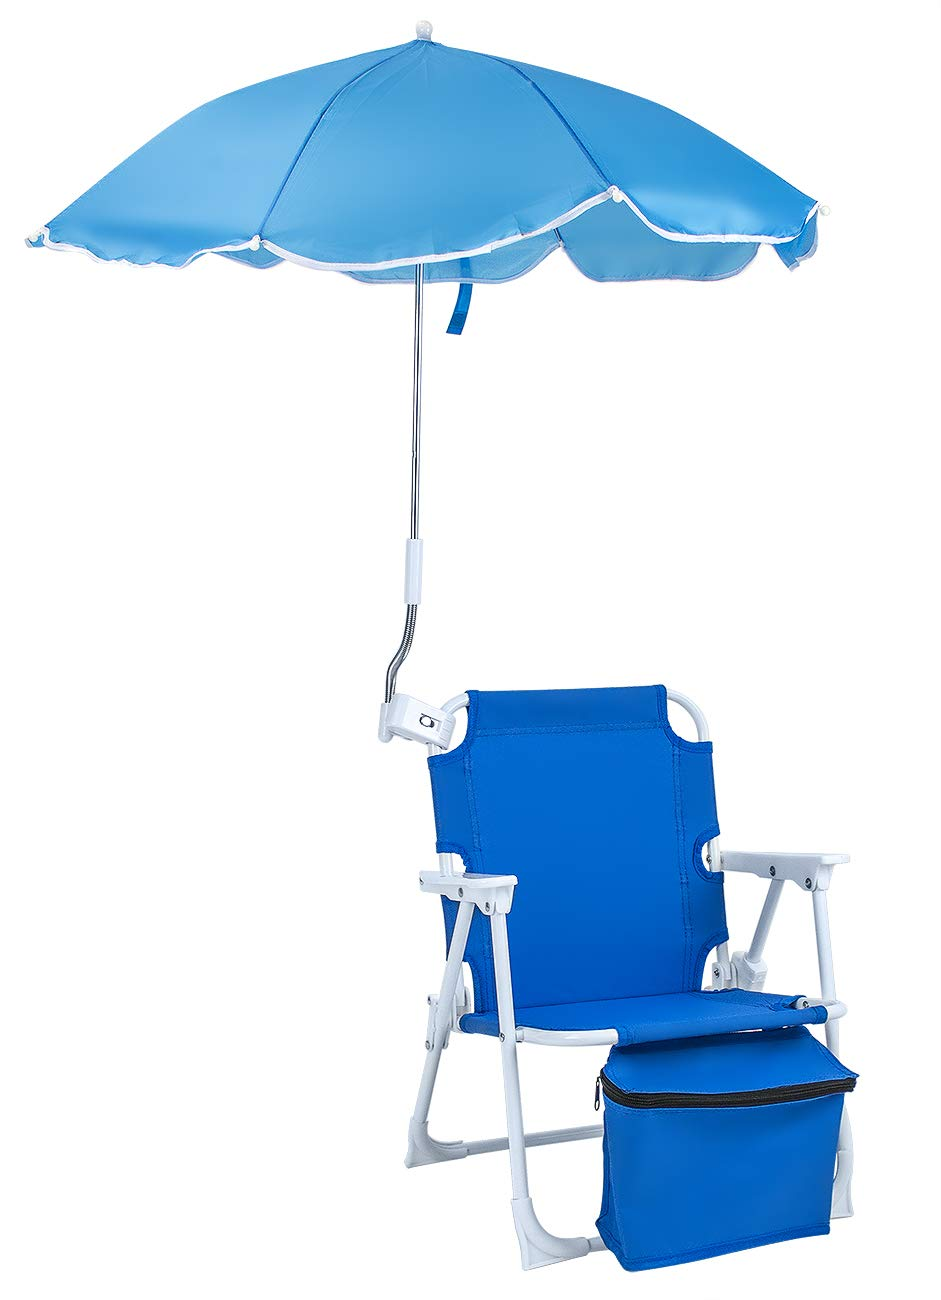 Sorbus Camping Chairs, Seat Size 14 x13 x19 H, Foldable Frame, and Portable Carry Bag, Great for Camping, Sporting Events, Beach, Travel, Backyard, Patio, etc Kid Umbrella Chair Blue